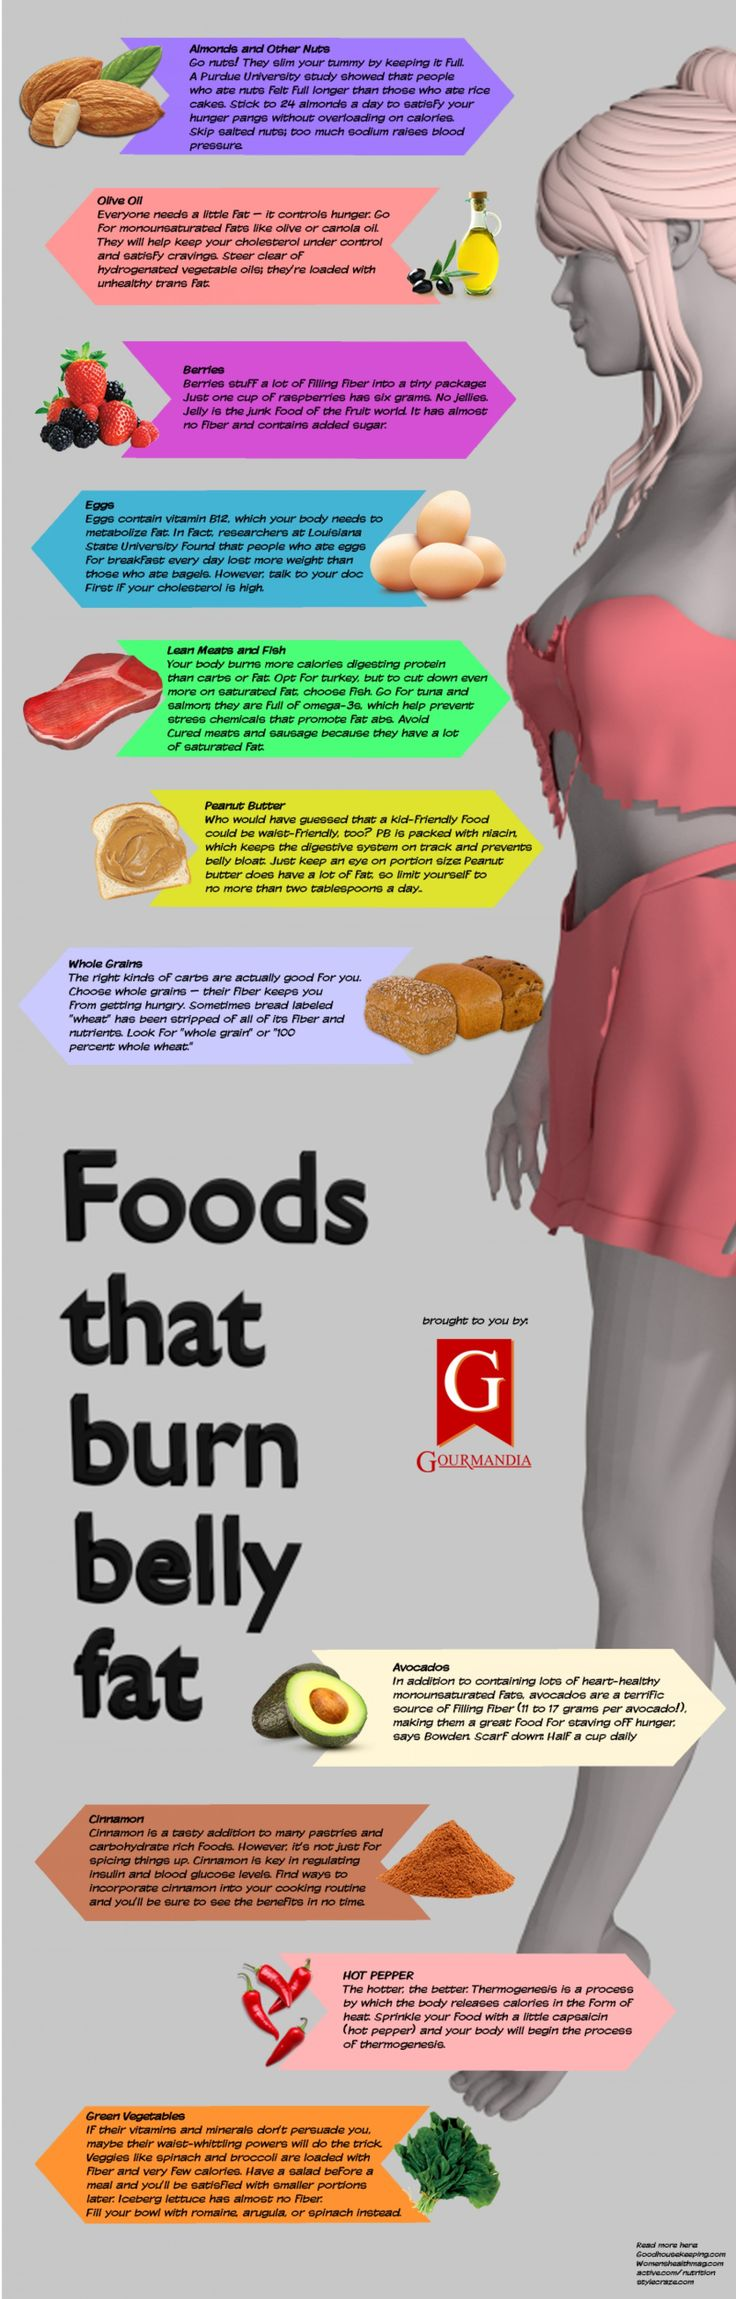 Foods that Burn Belly Fat -shared by catalinalinkava | published Feb 23, 2014